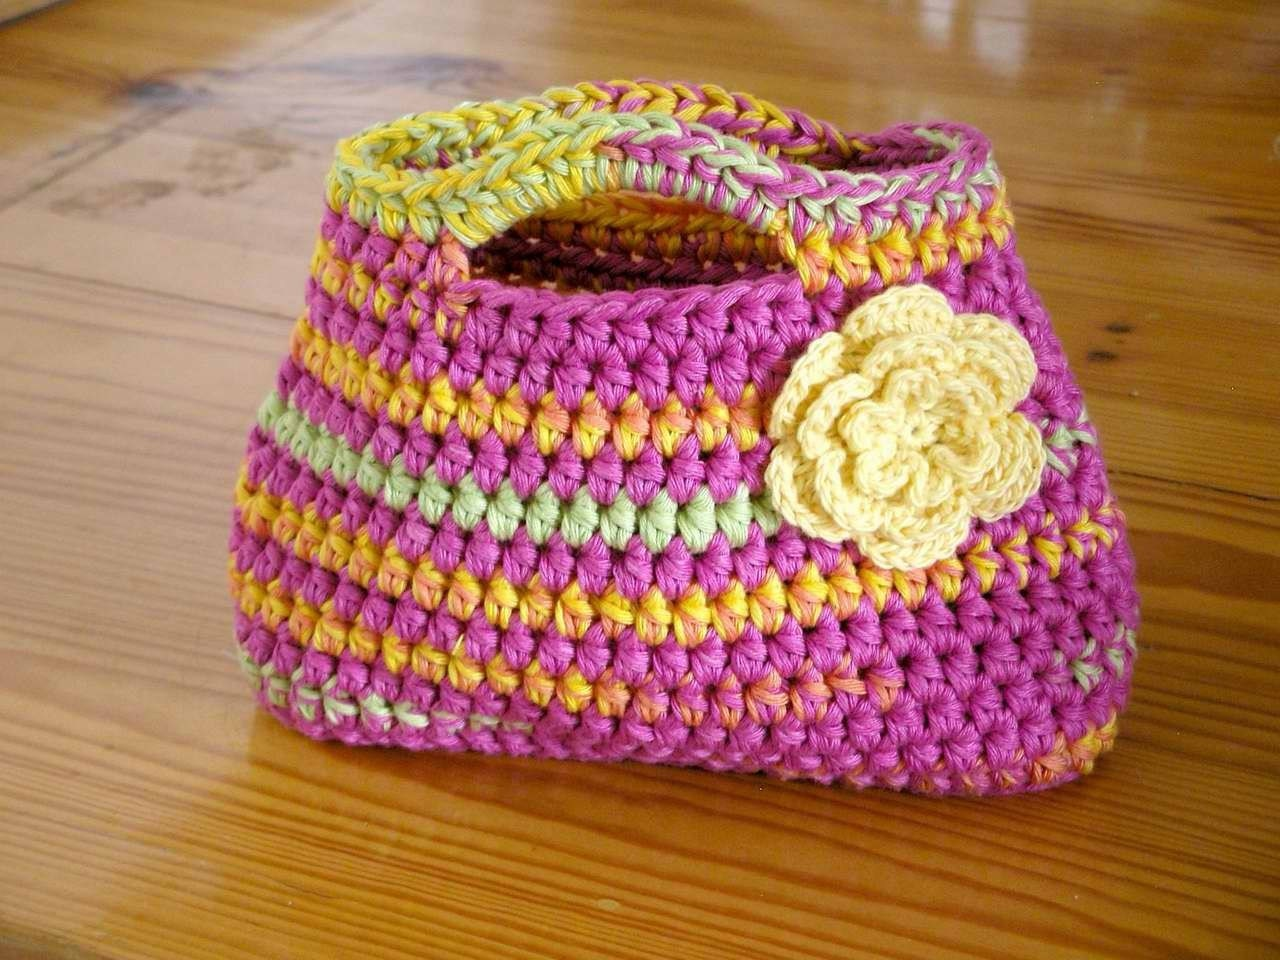 Crochet Simple Bag : Easy Peasy Little Kidz Bag Crochet PATTERN by bubnutPatterns